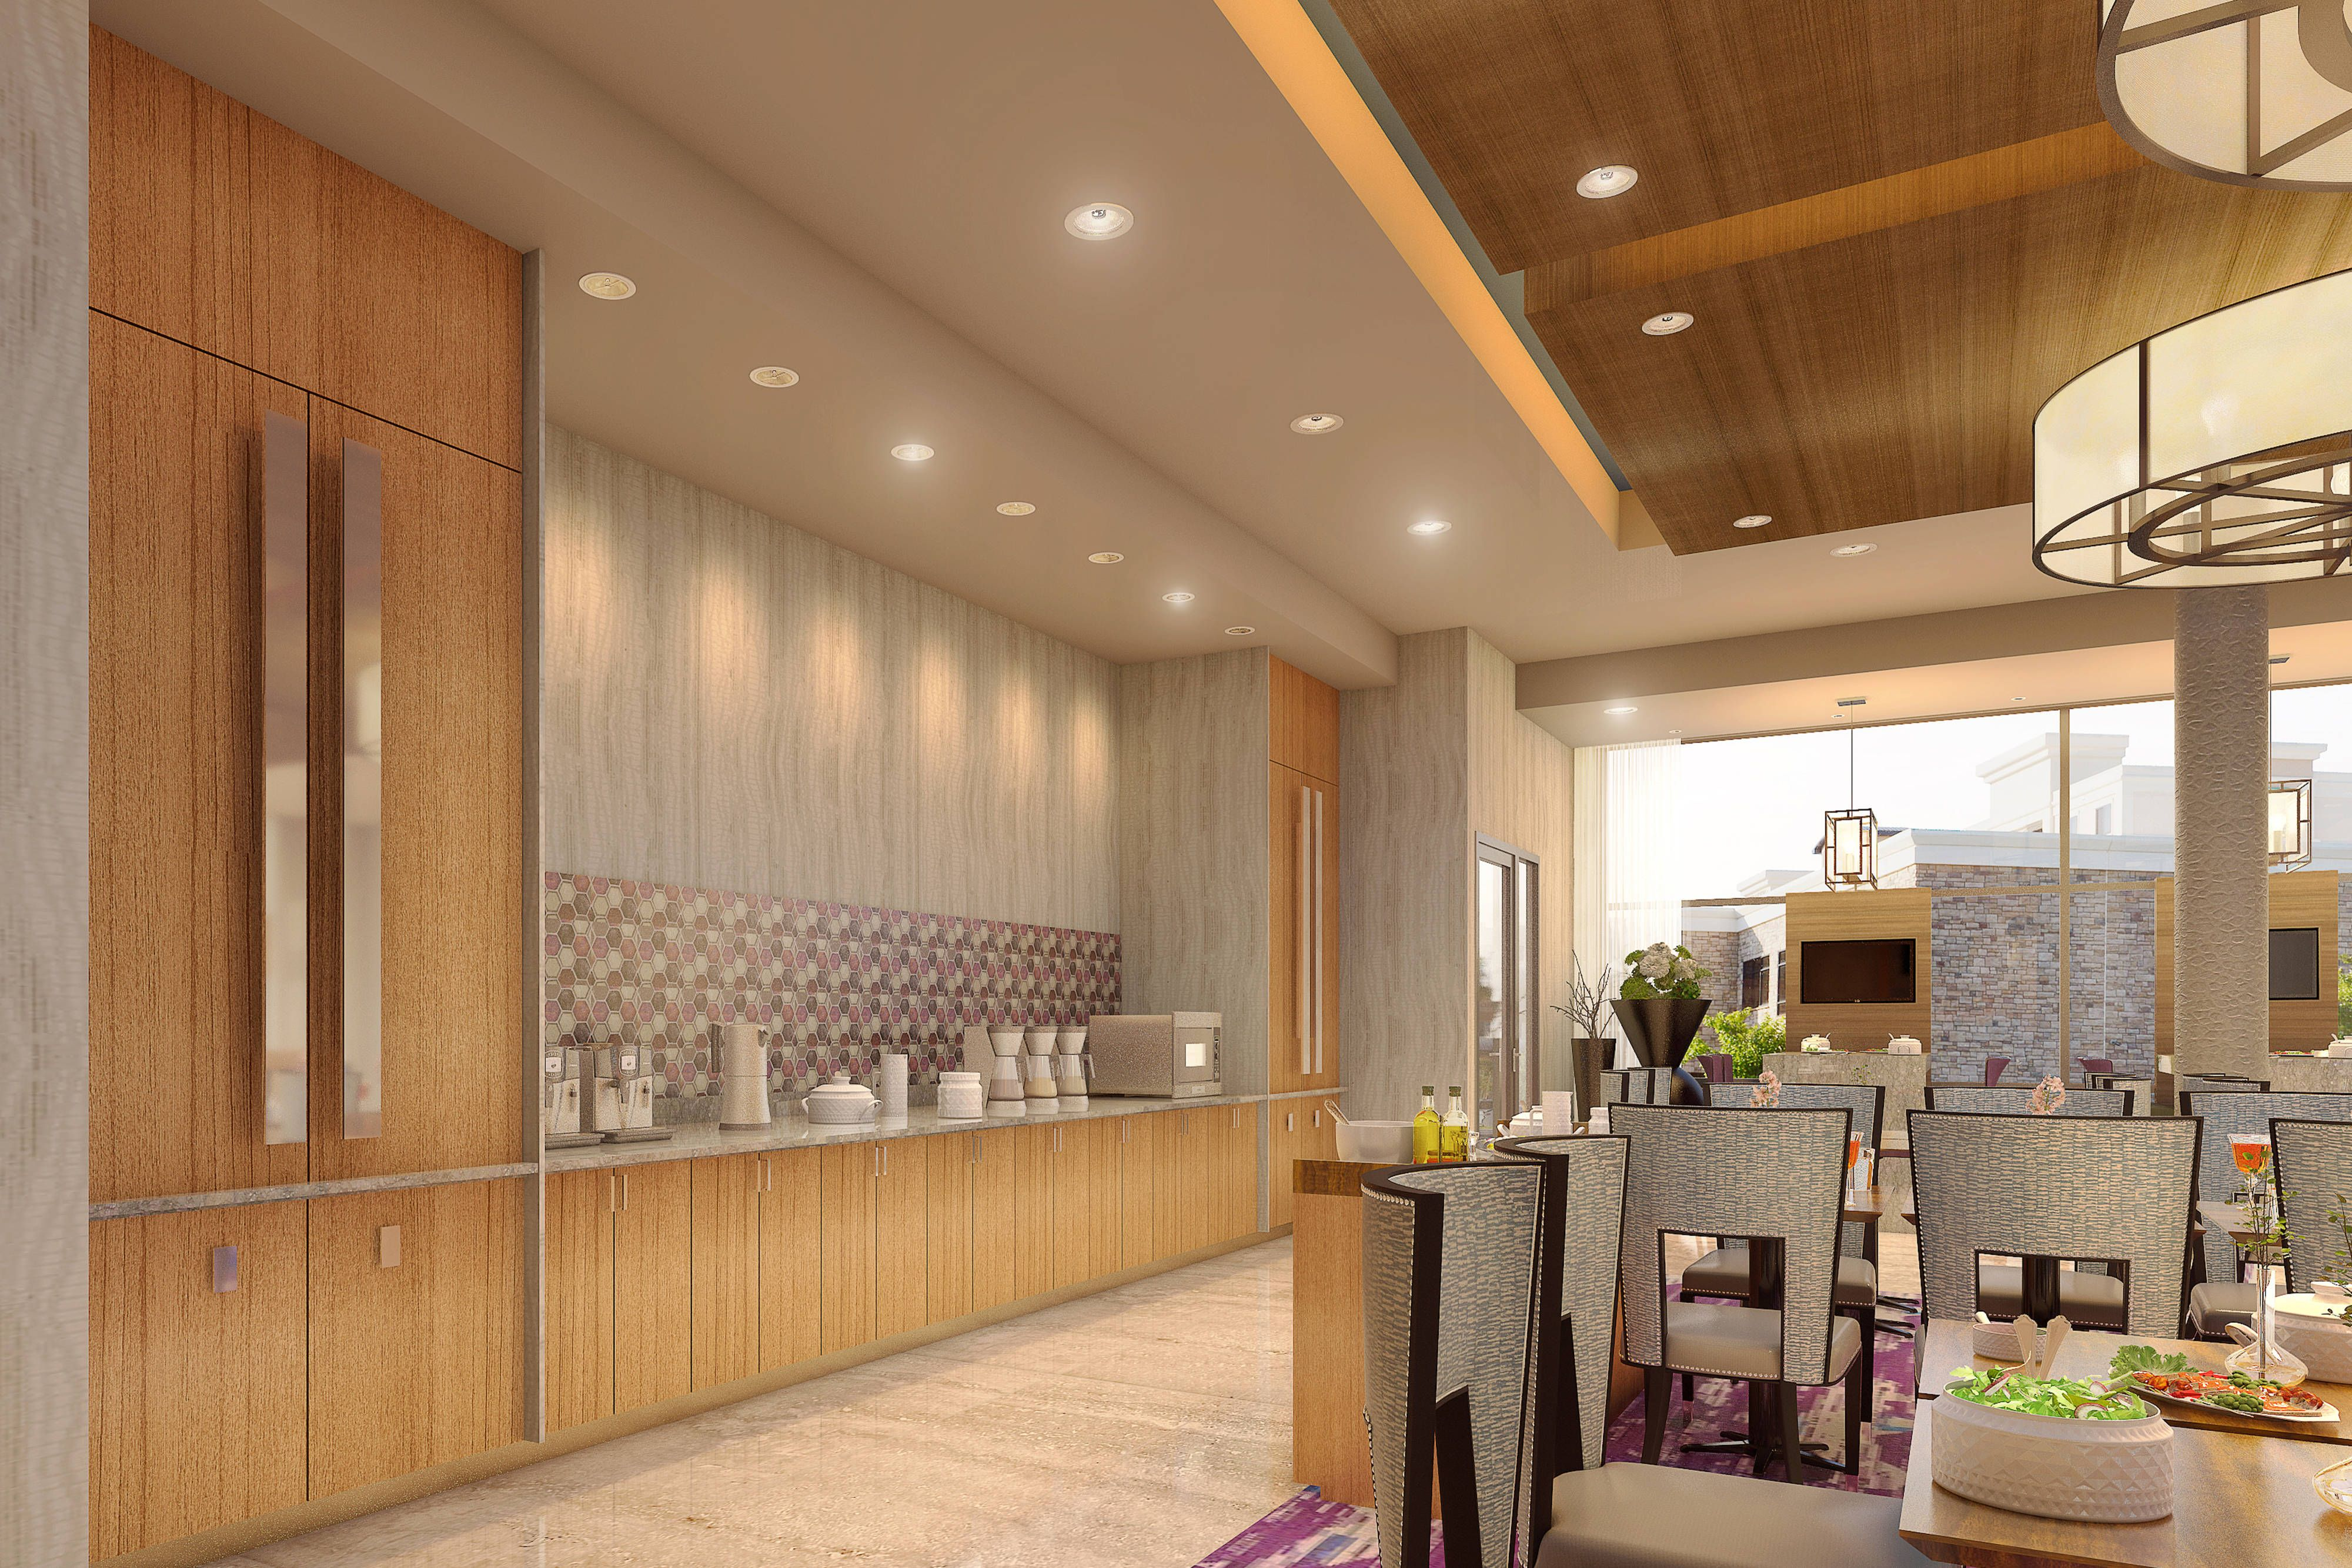 Springhill Suites Fayetteville Fort Bragg Dining Area Rooms